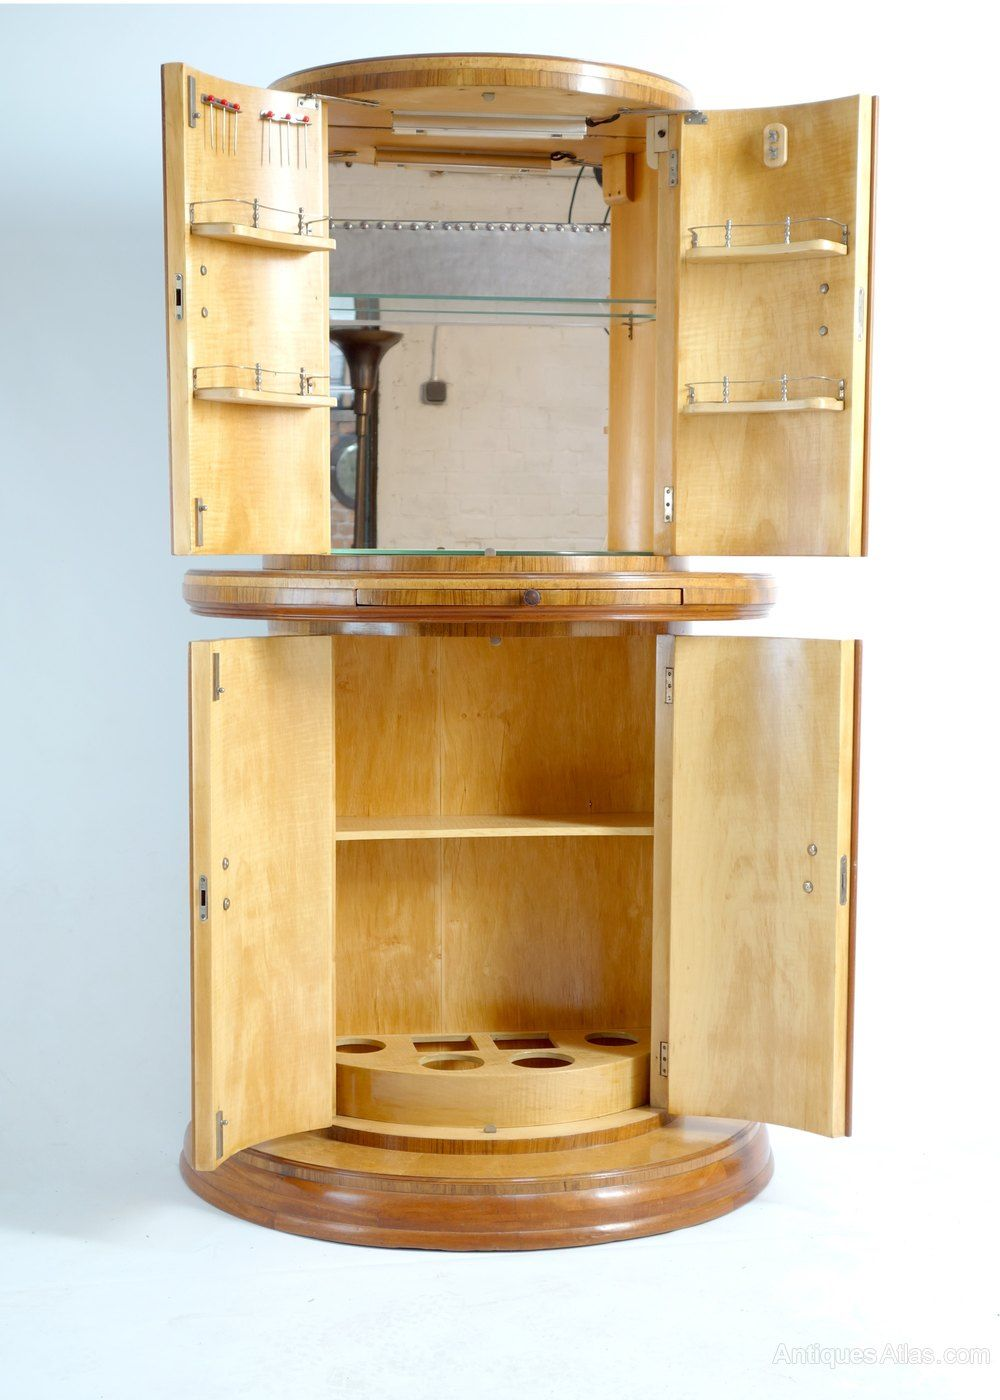 Art Deco Cocktail Cabinet By Harry & Lou Epstein - Antiques Atlas - Art Deco Cocktail Cabinet By Harry & Lou Epstein - Antiques Atlas